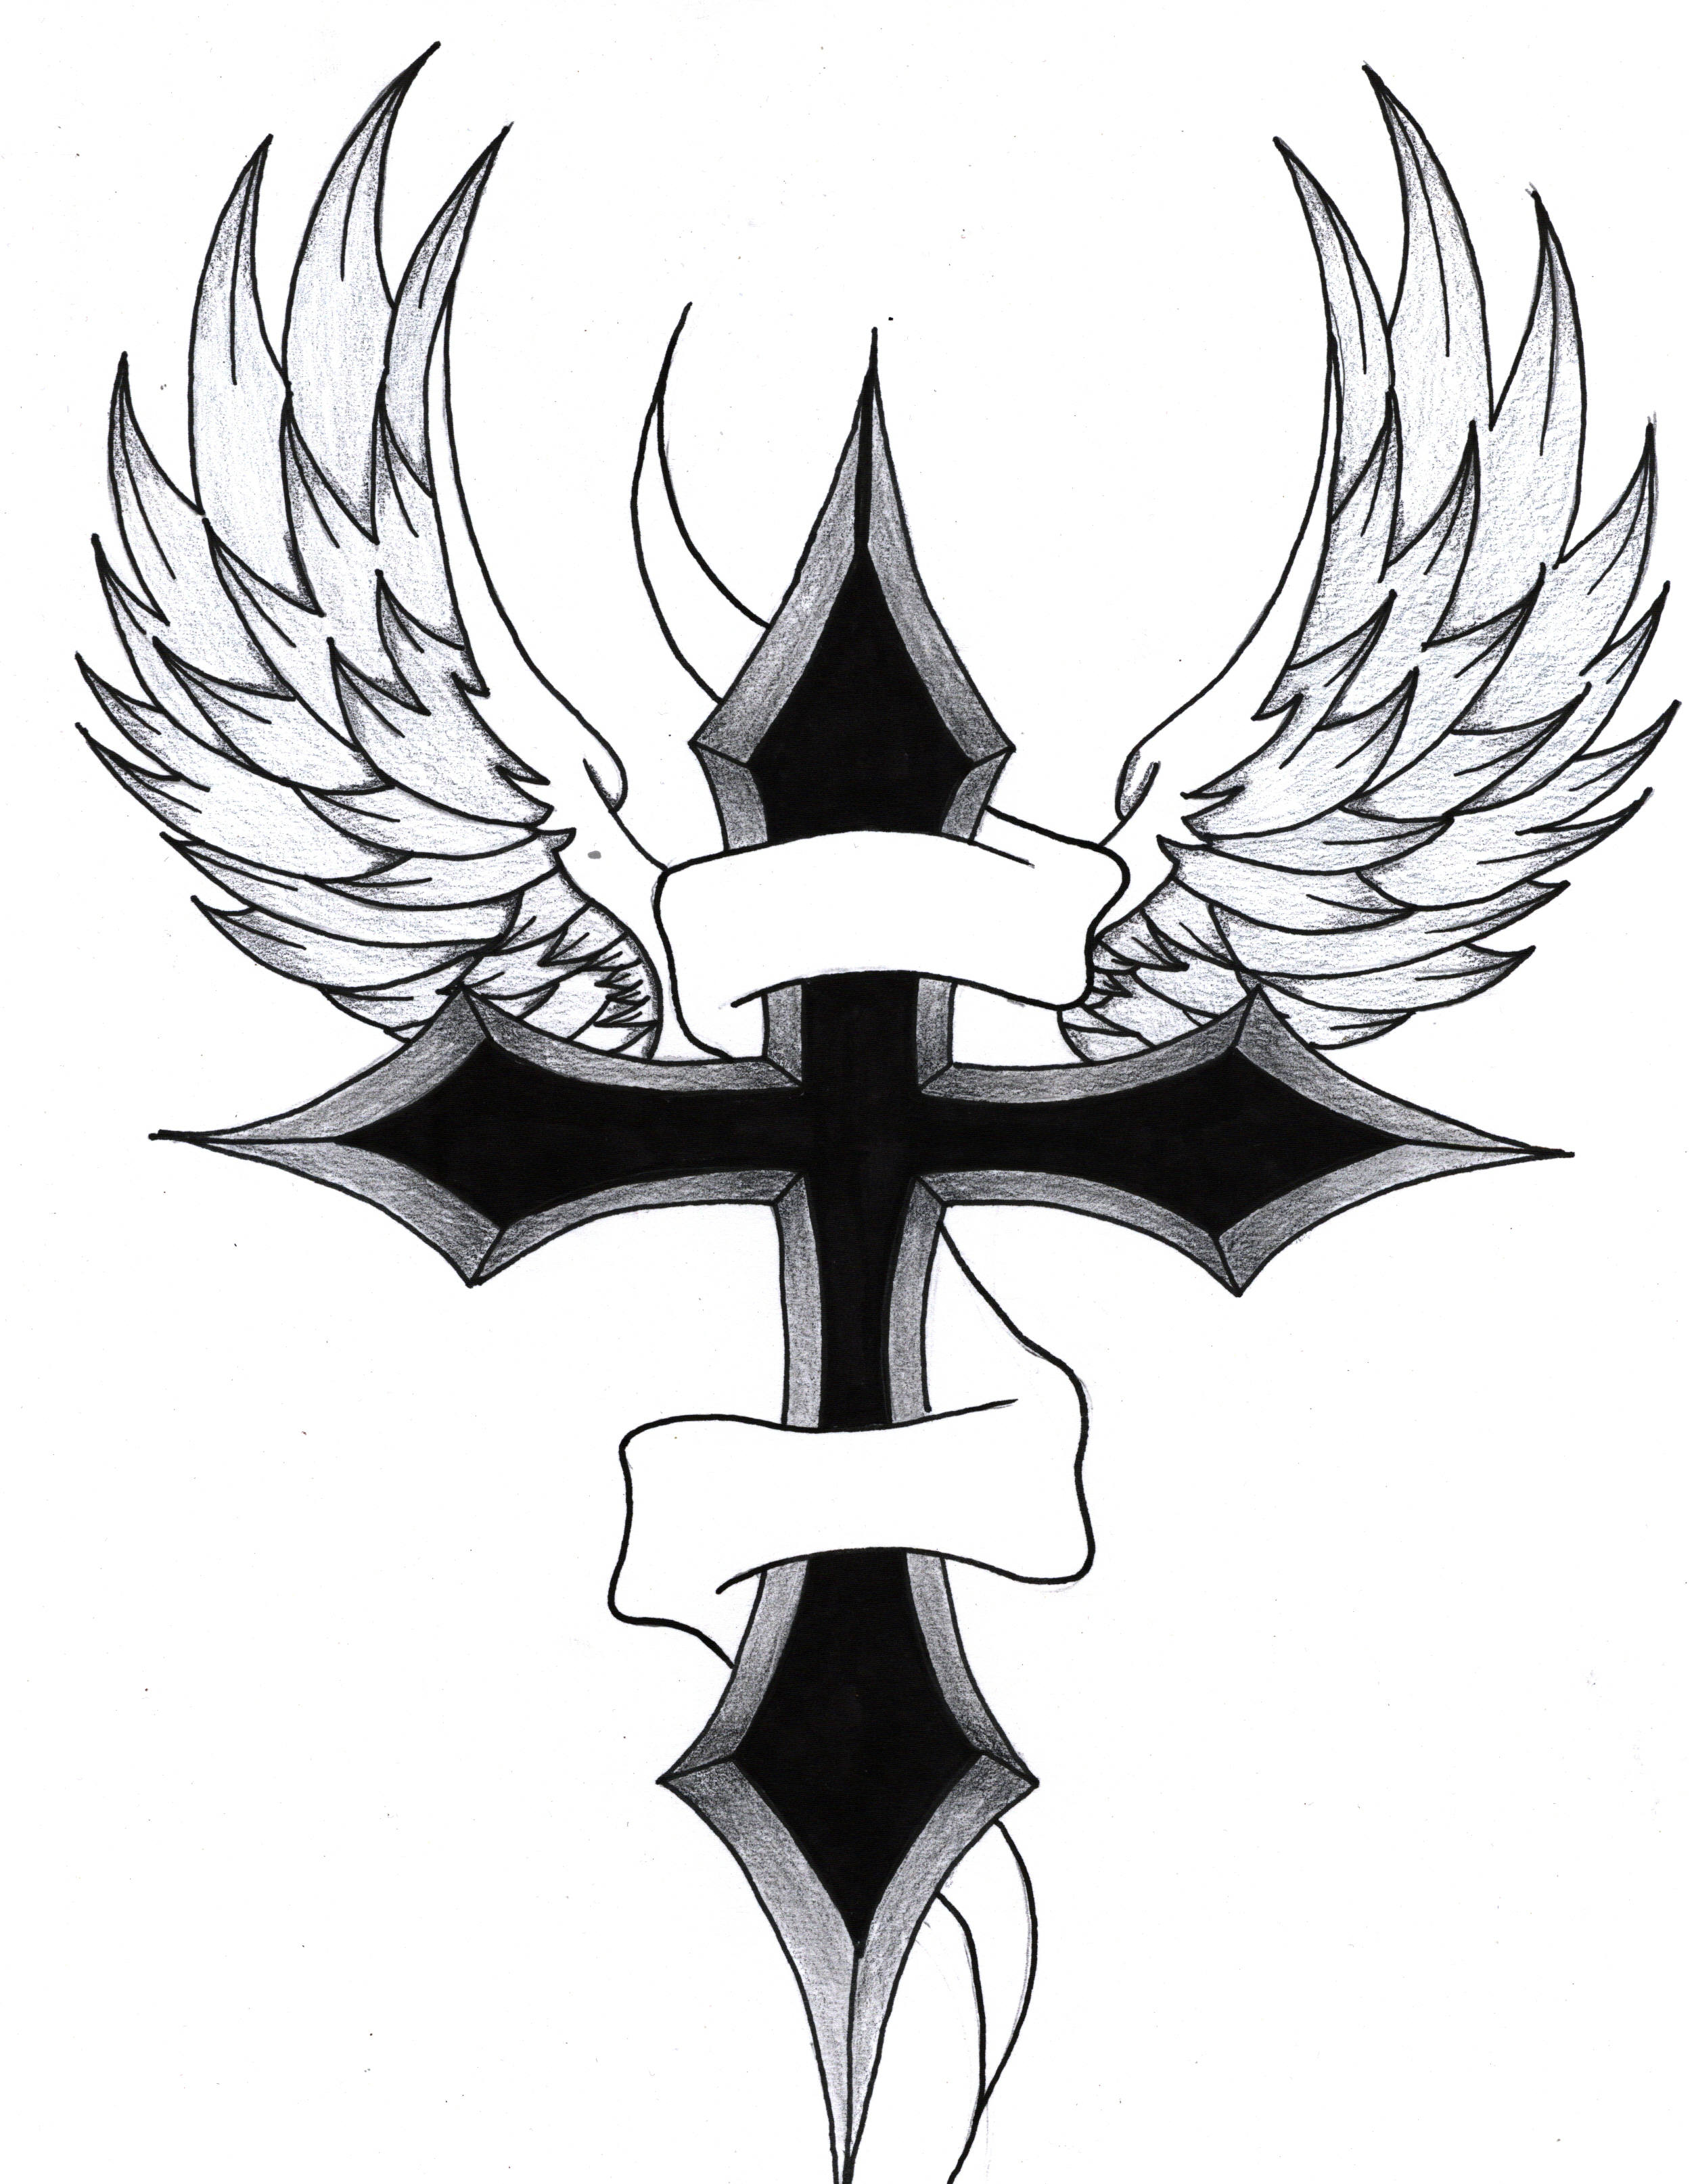 Cool Drawings Of Crosses With Wings Images amp Pictures Becuo